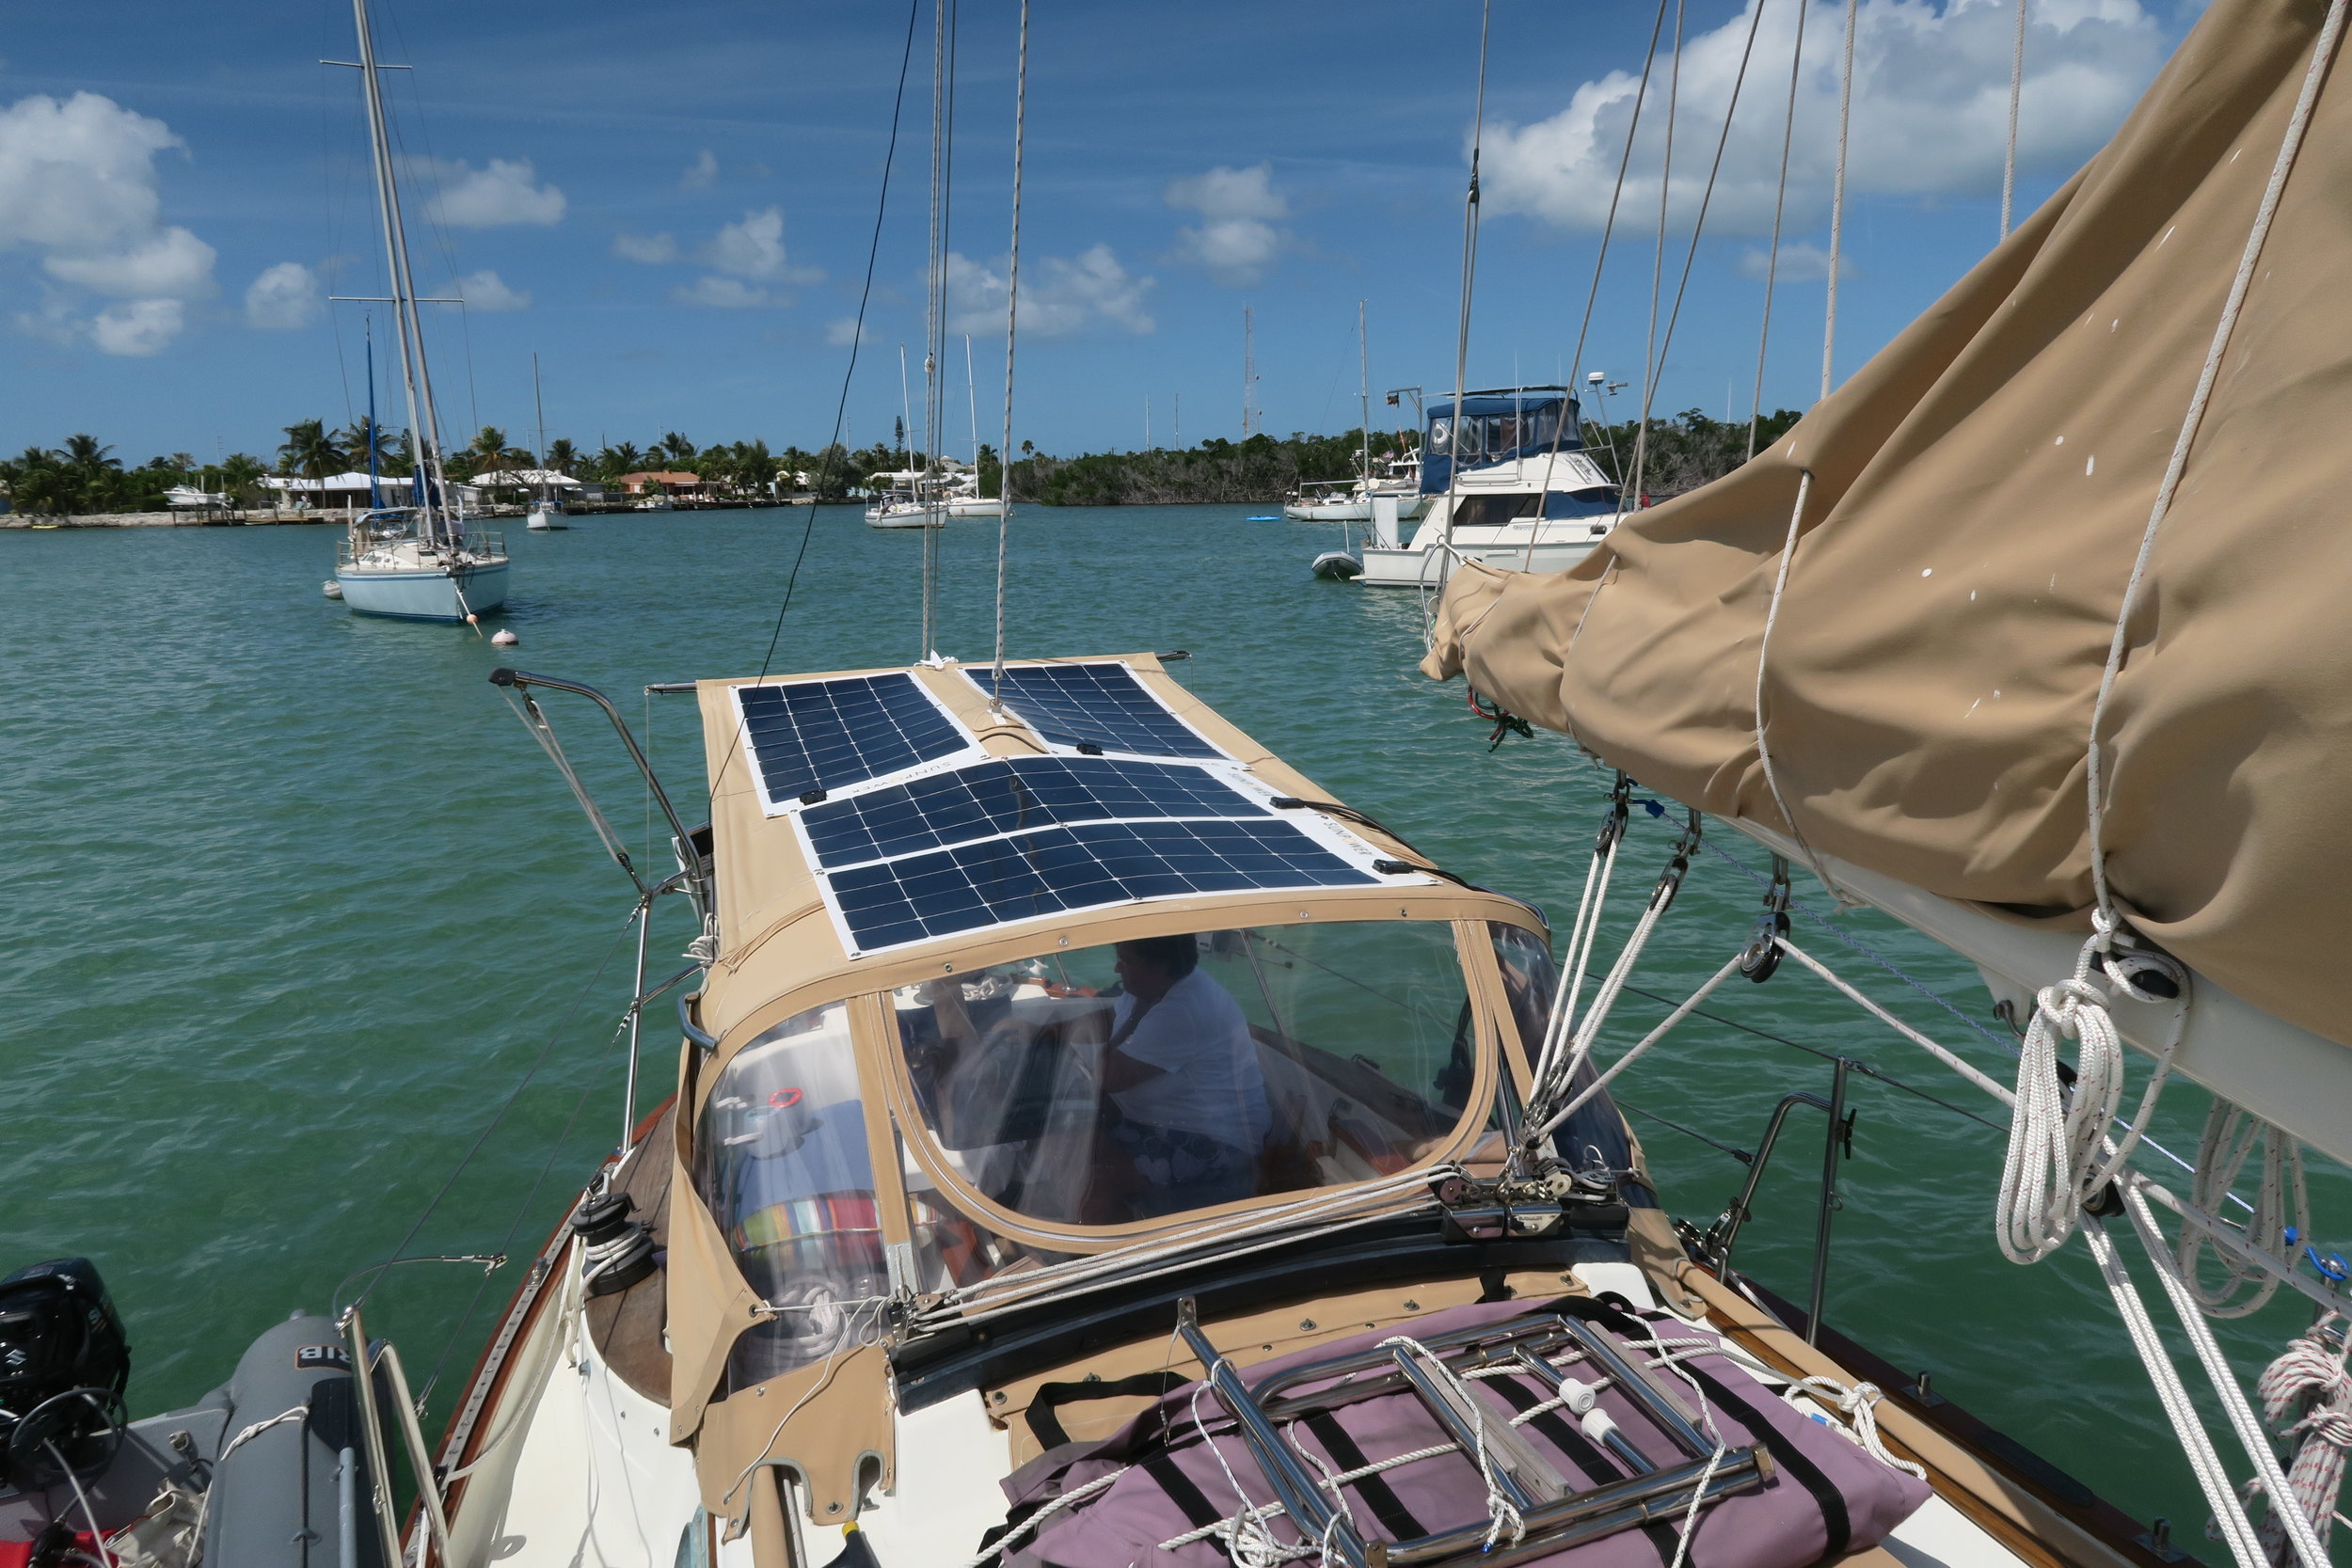 Our four SunPower 100 watt solar panels, mounted on our dodger and cockpit awning with Loxx Grommet Snaps